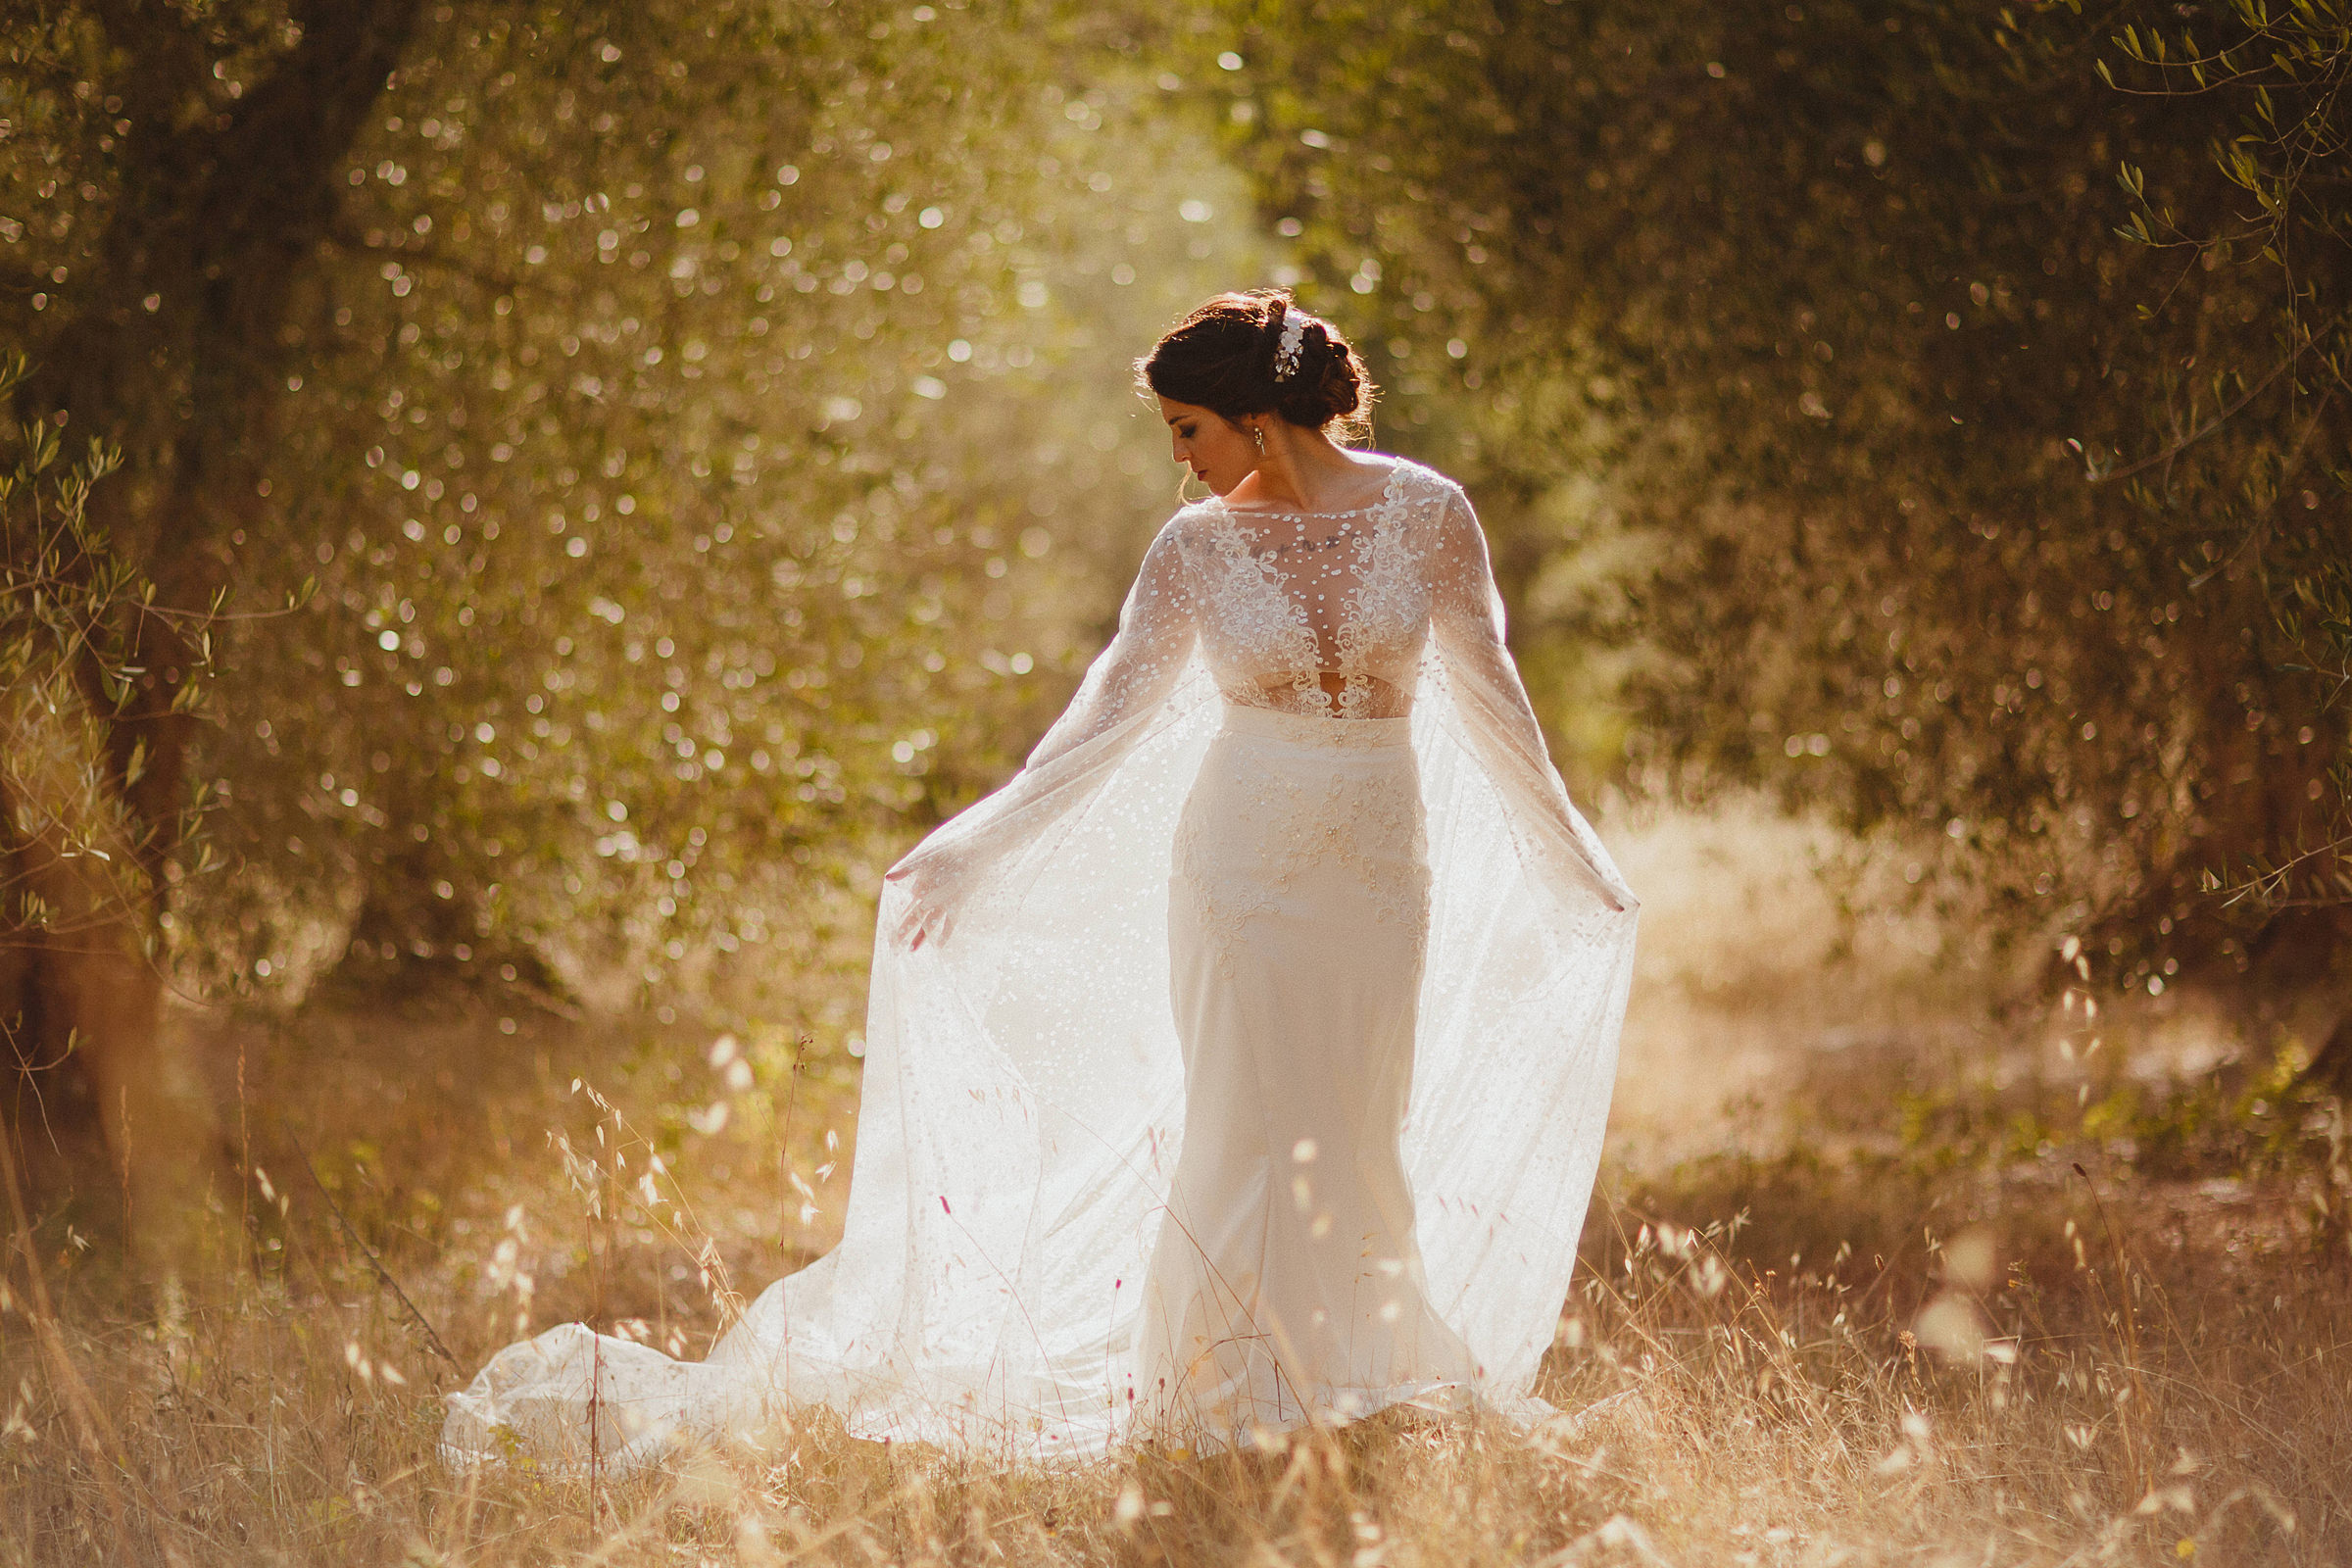 Bride against trees in gown with gauzy shawl - photo by Ed Peers Photography